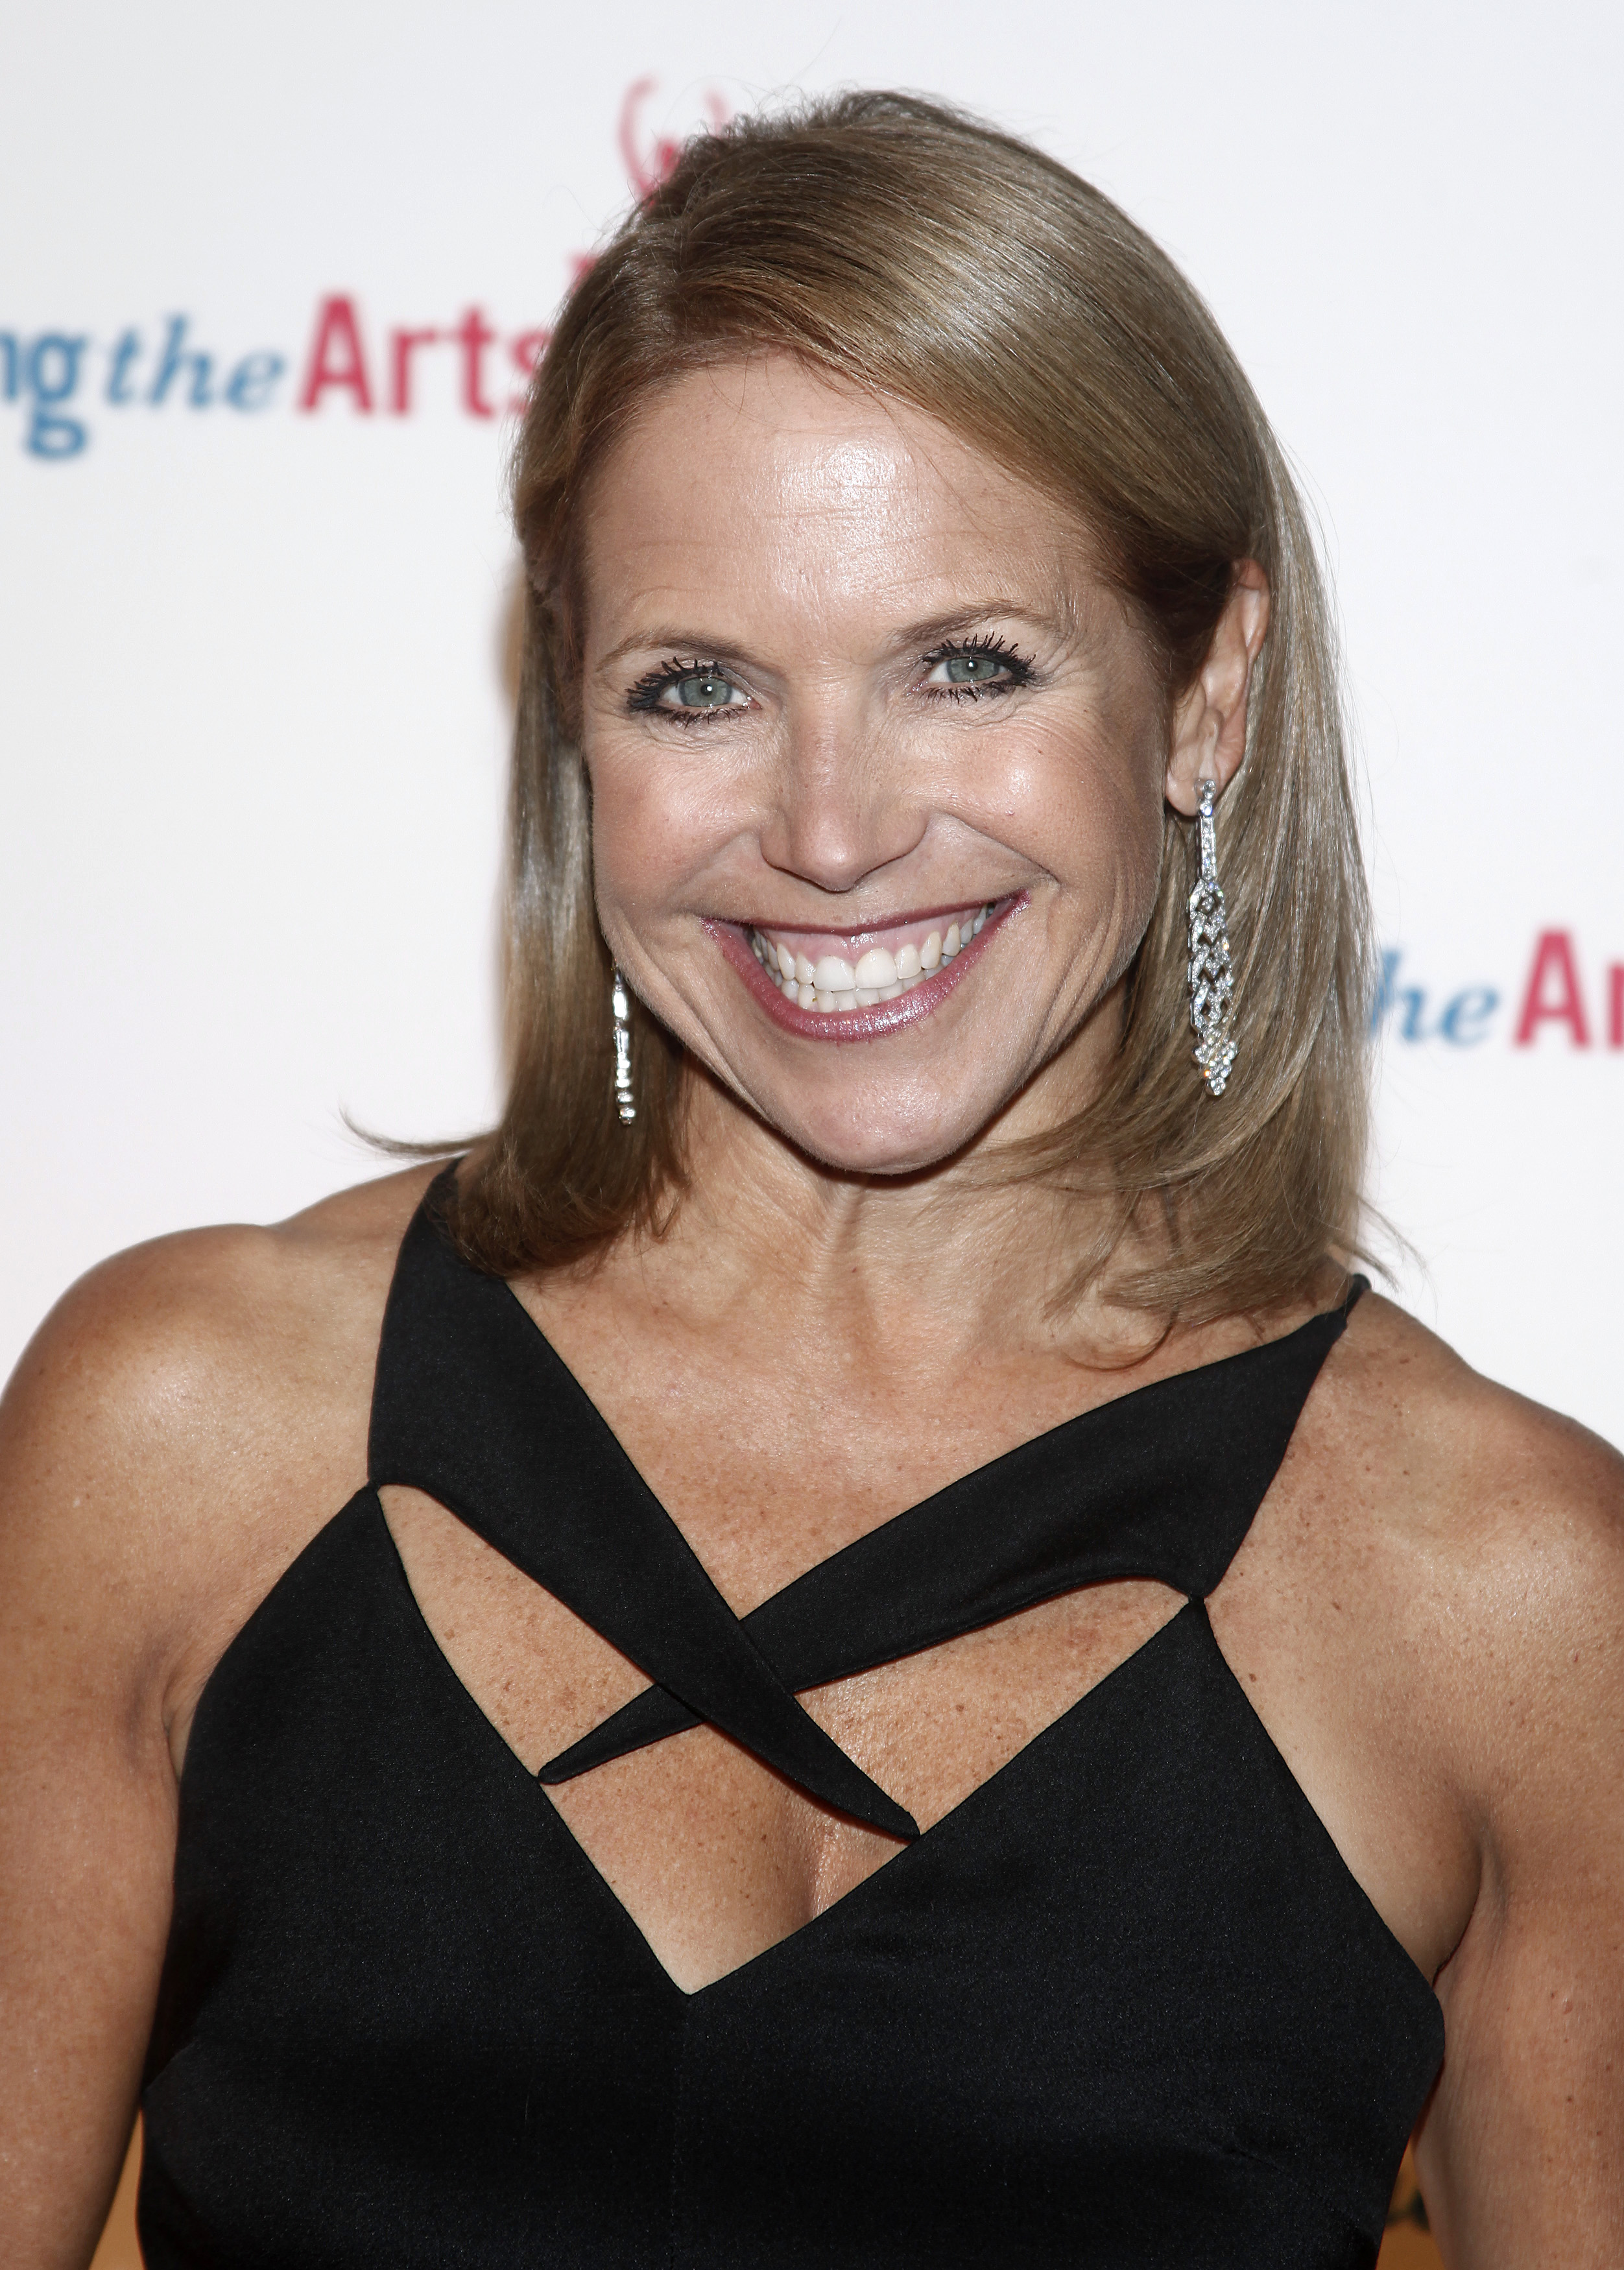 Katie Couric earned a  million dollar salary, leaving the net worth at 55 million in 2017